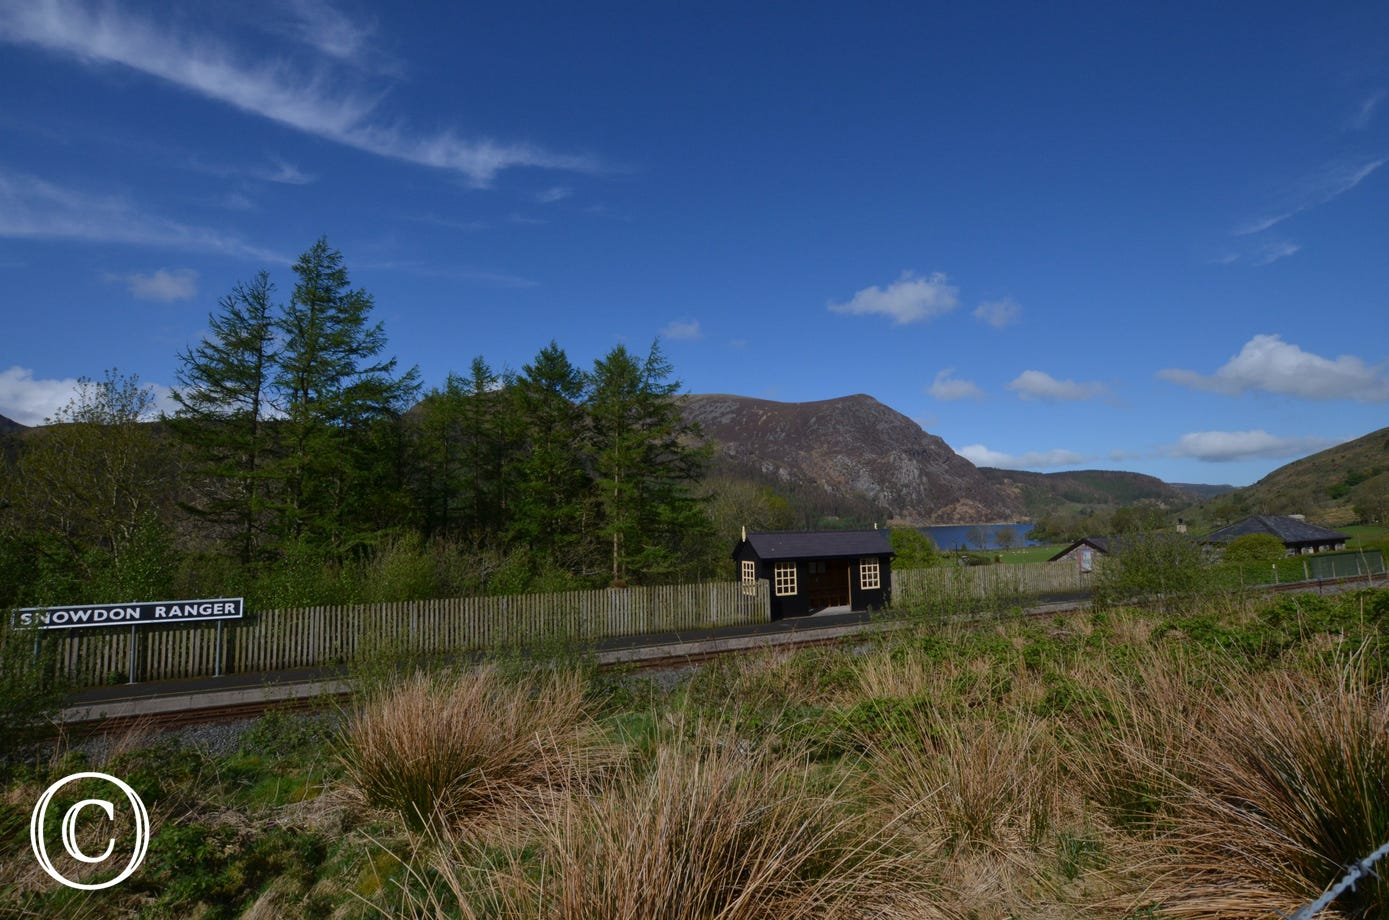 WAG351- View of Old Snowdon Ranger Station